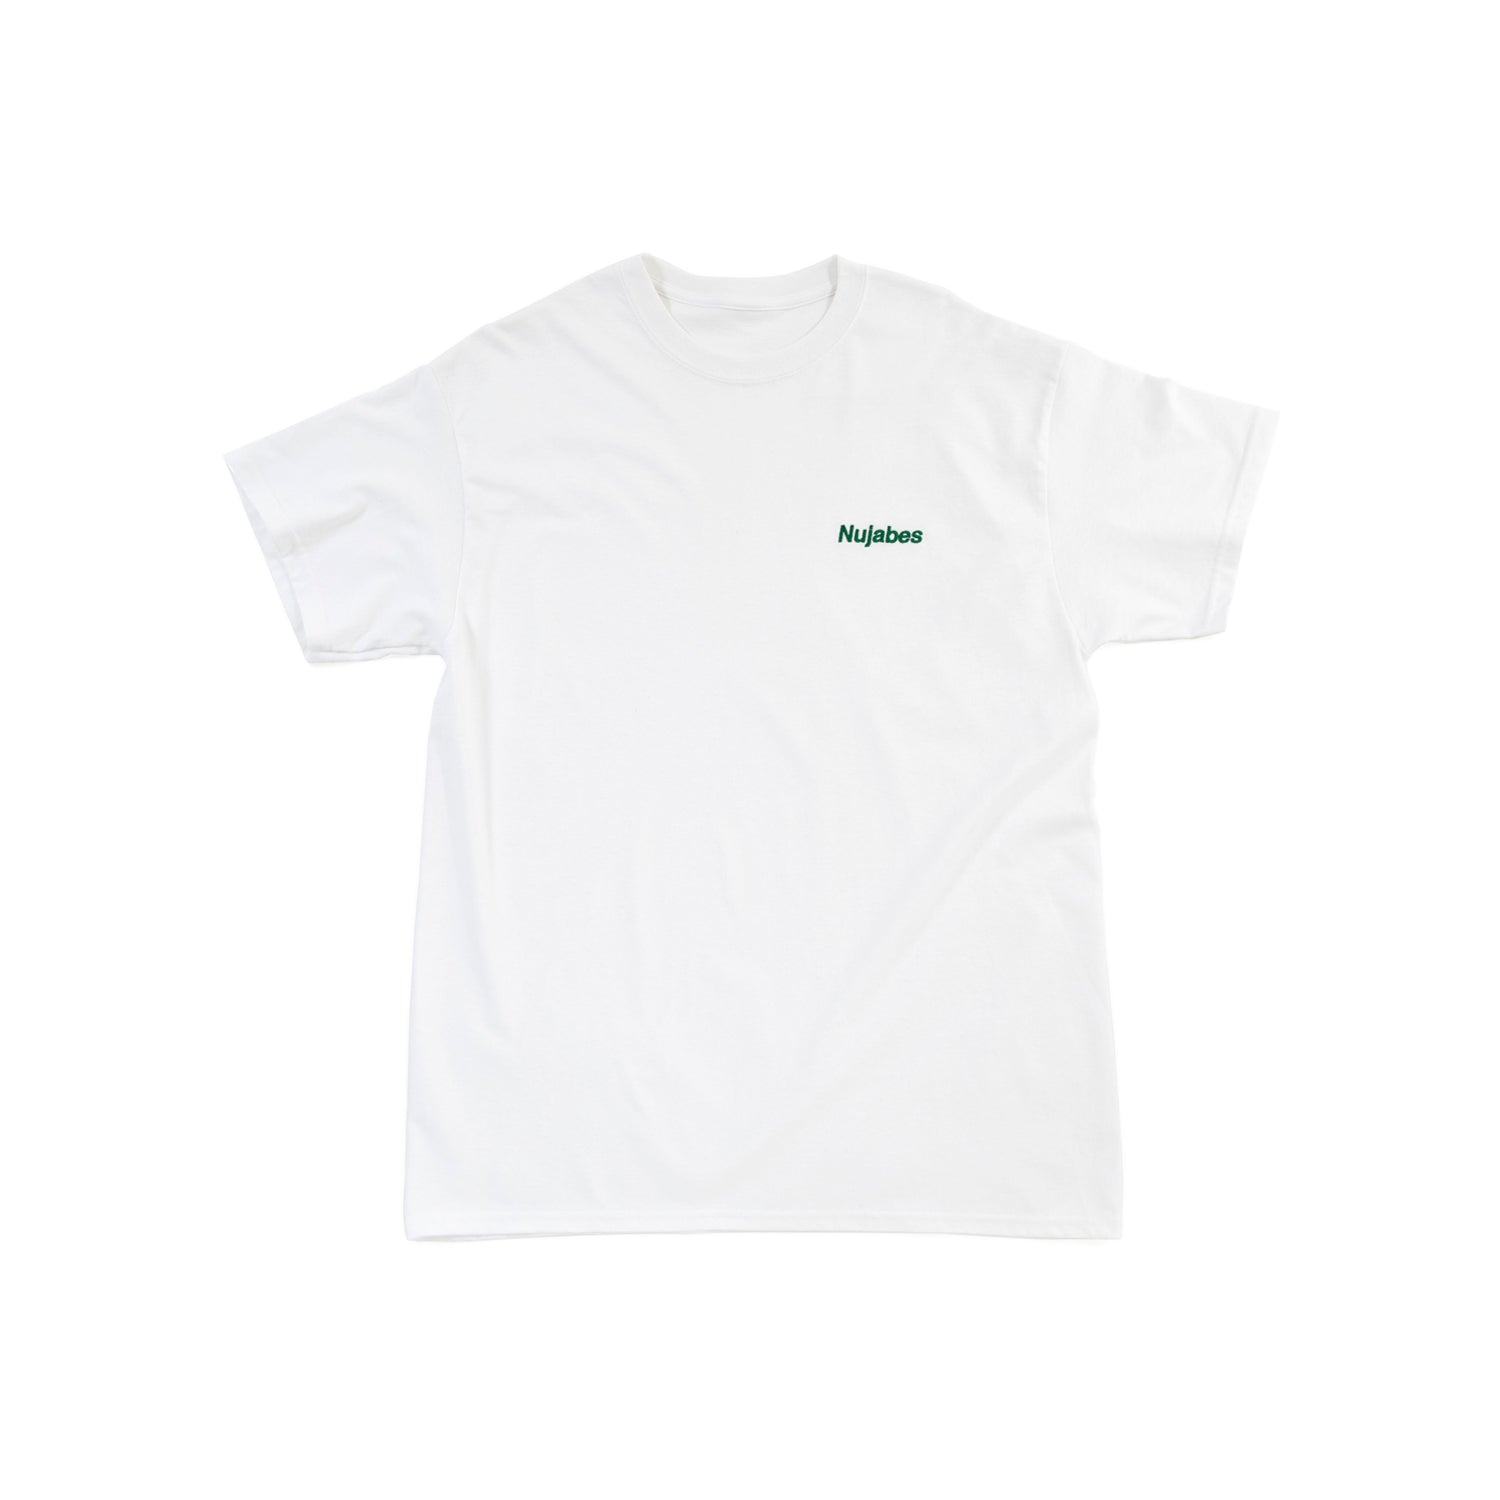 Nujabes Small Logo Tee - White